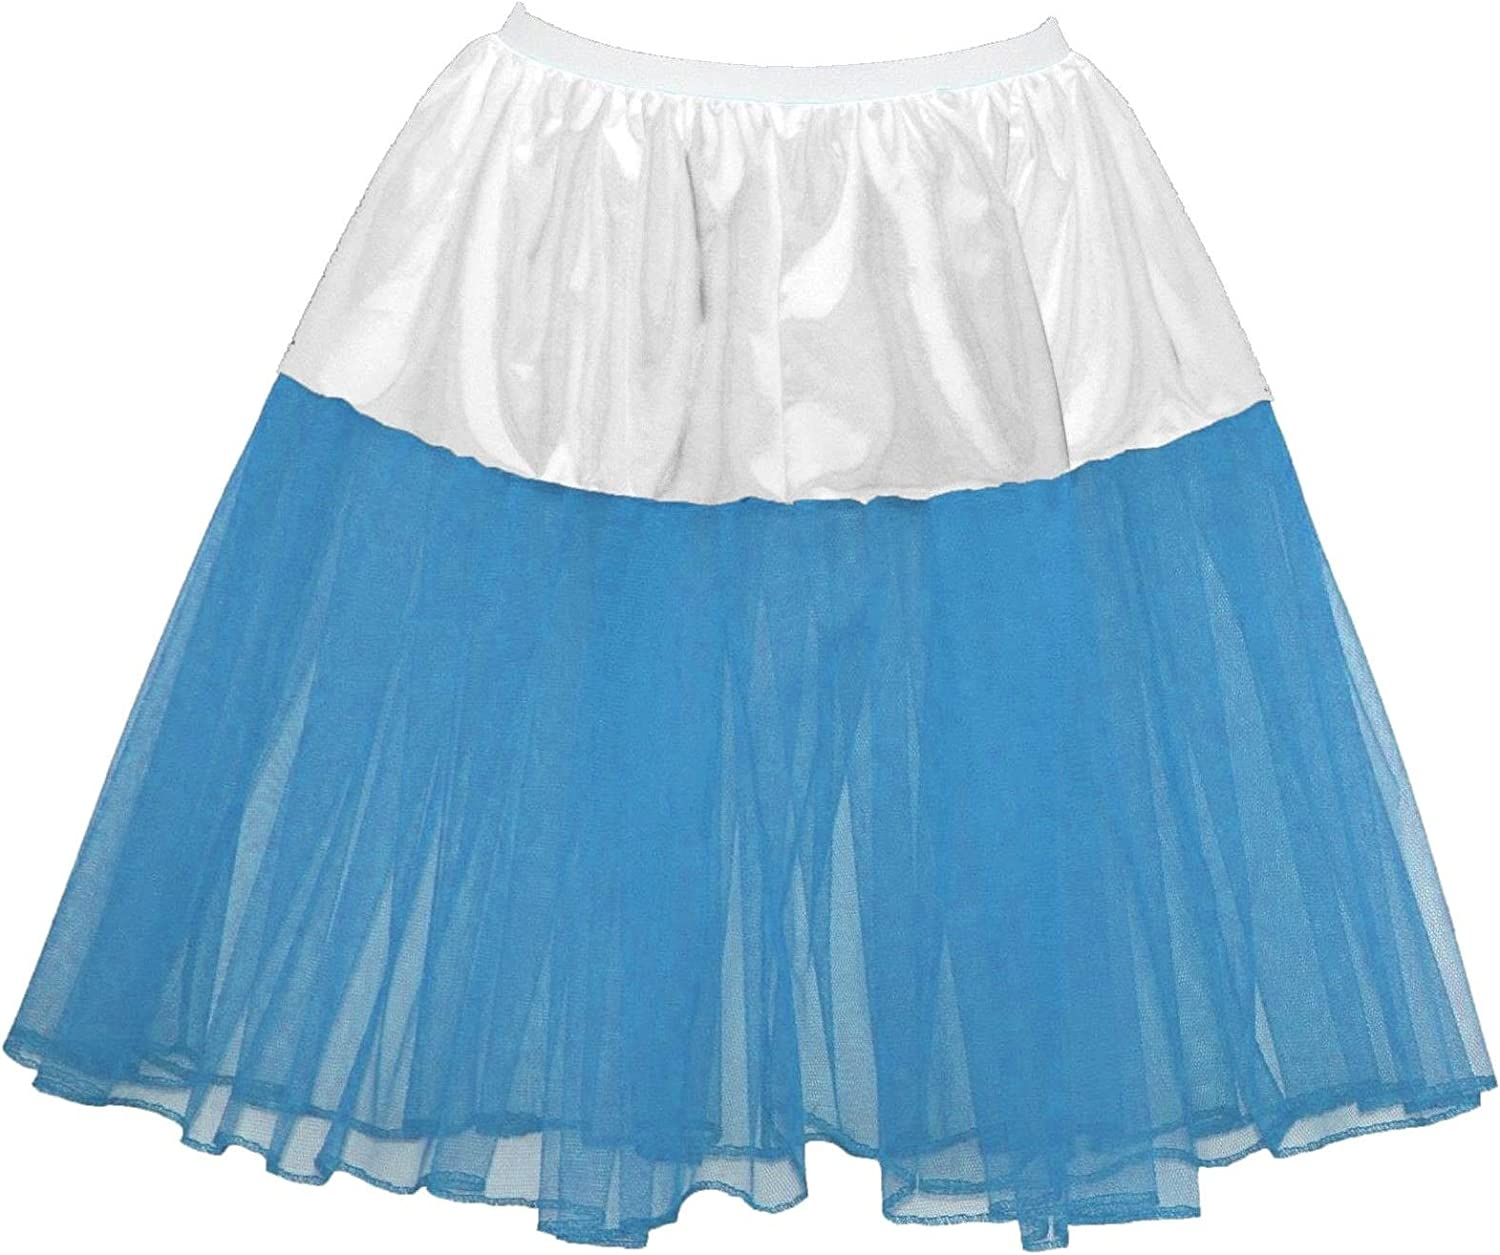 Baby Pink Age 6-12 Childrens 16 Rock /& Roll UnderSkirt Petticoat With White Trim